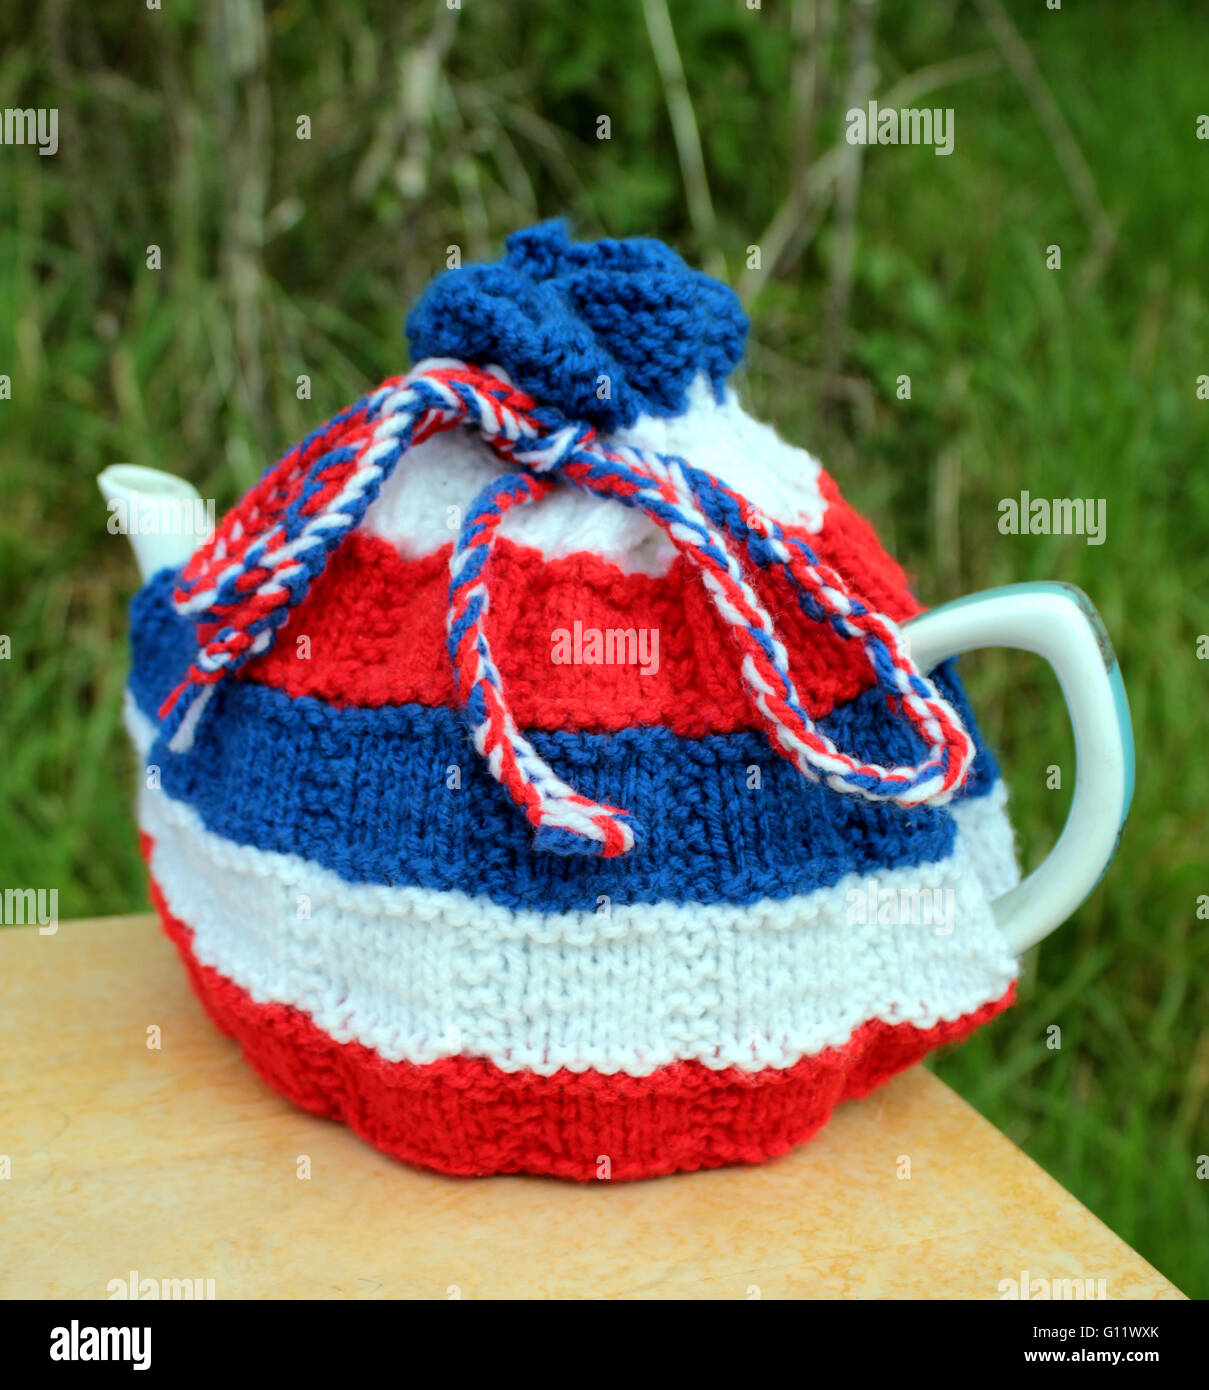 Hand knitted tea cosy in Red White and Blue yarn, could be patriotic for the UK or USA. - Stock Image